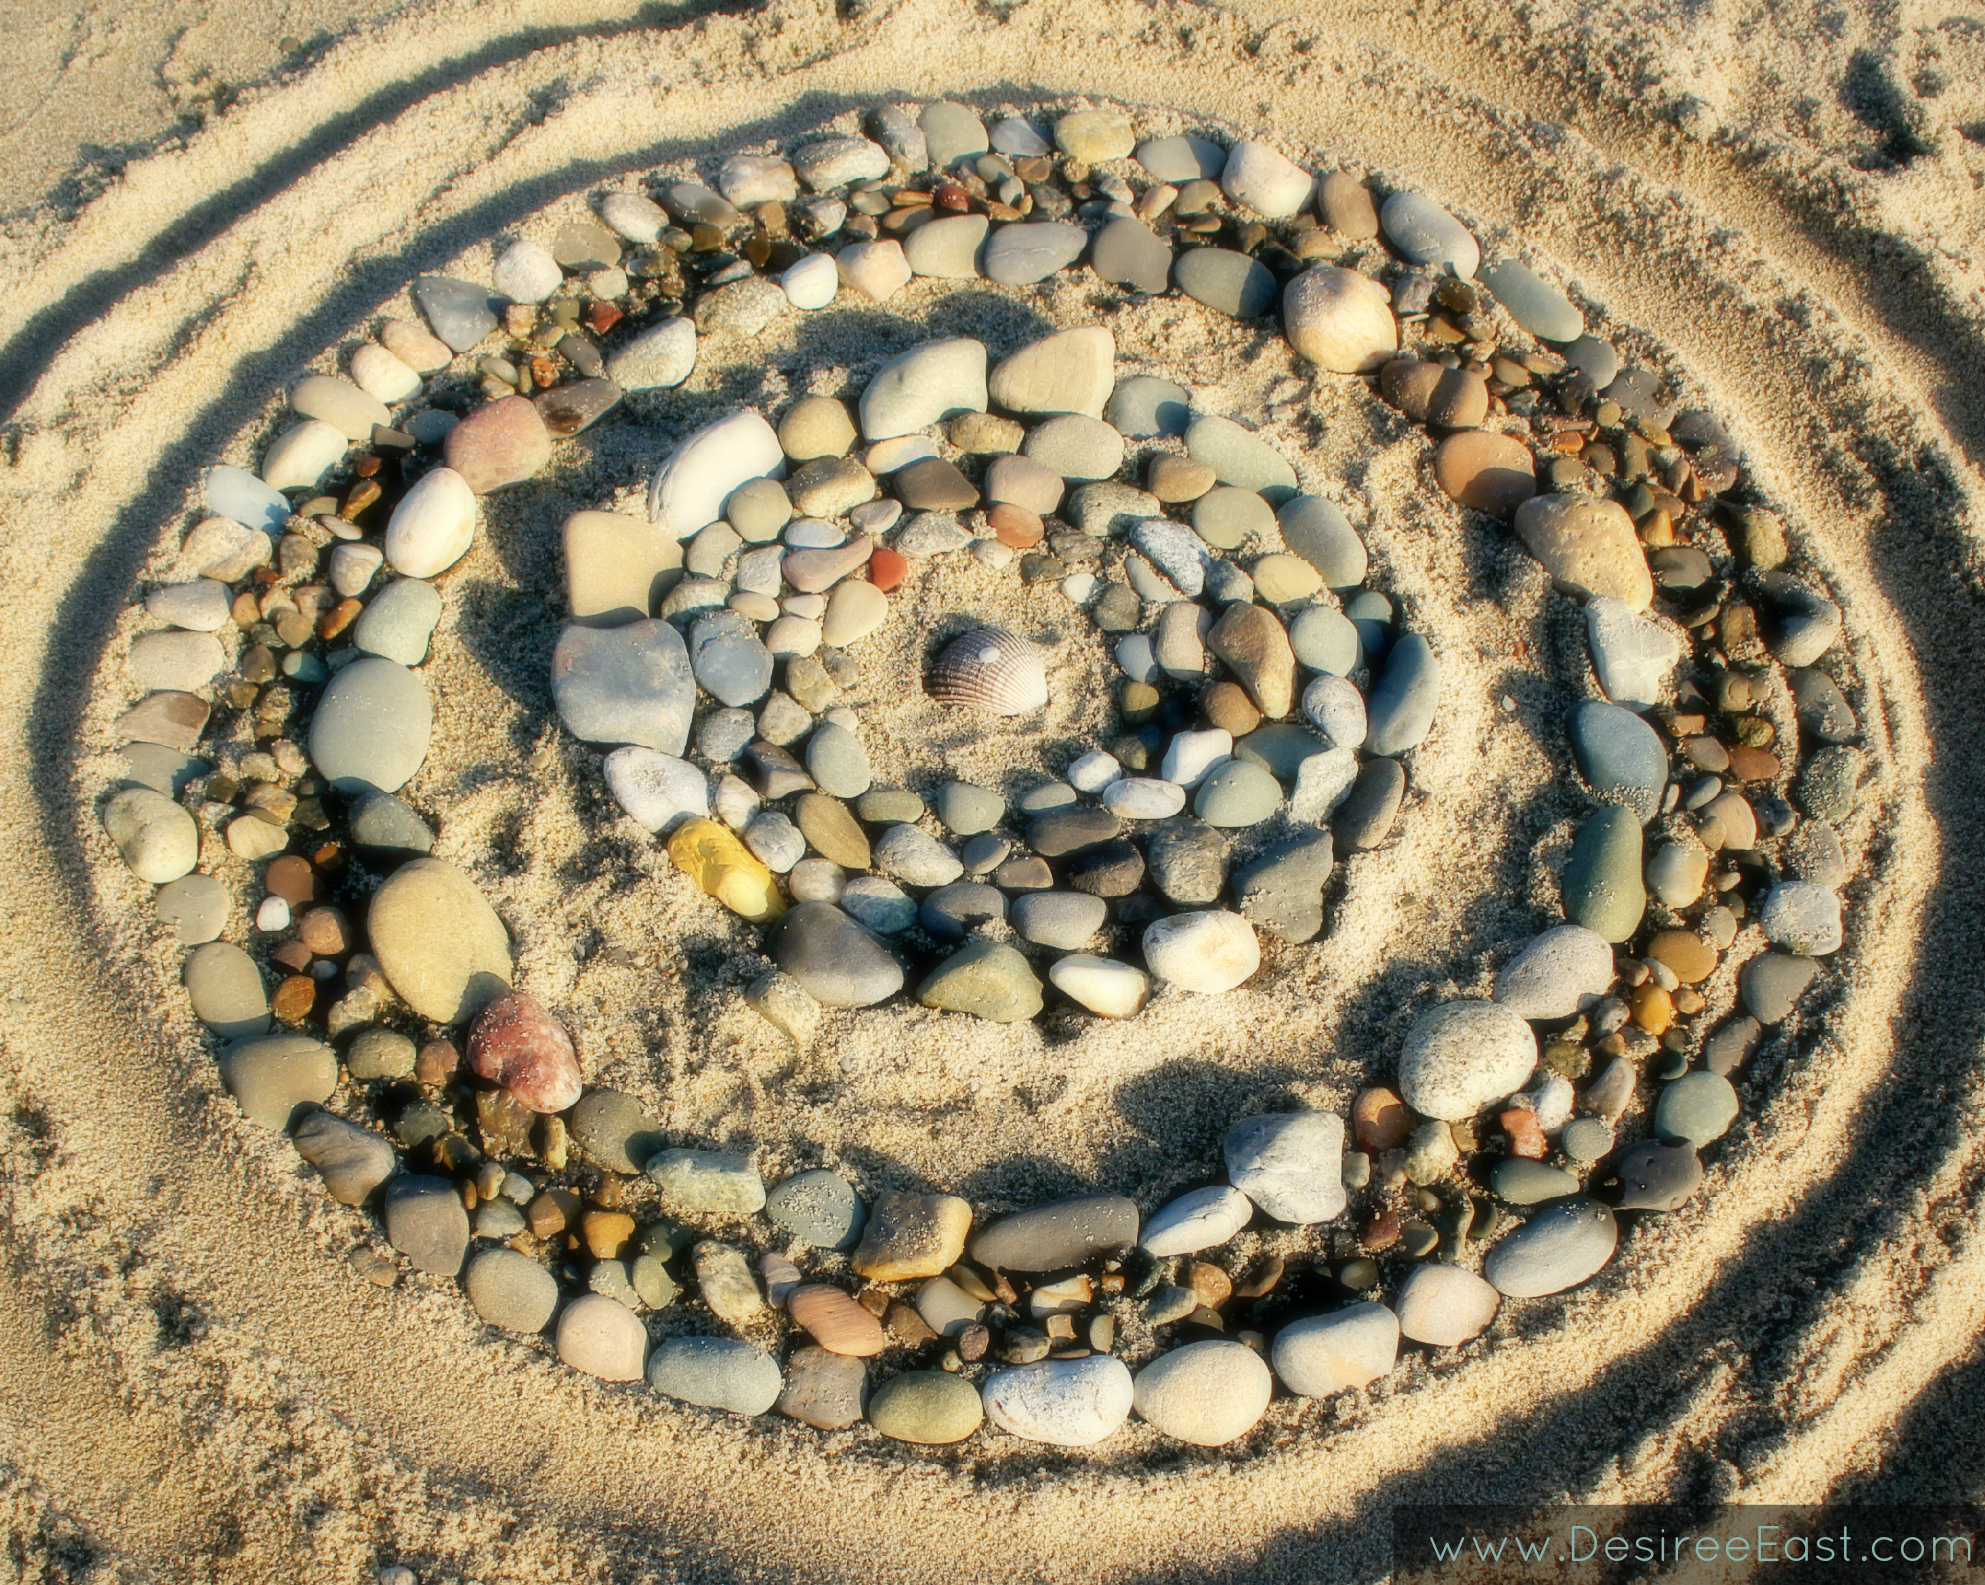 Copy of beach-mandala-winter-2014-by-desiree-east.jpg